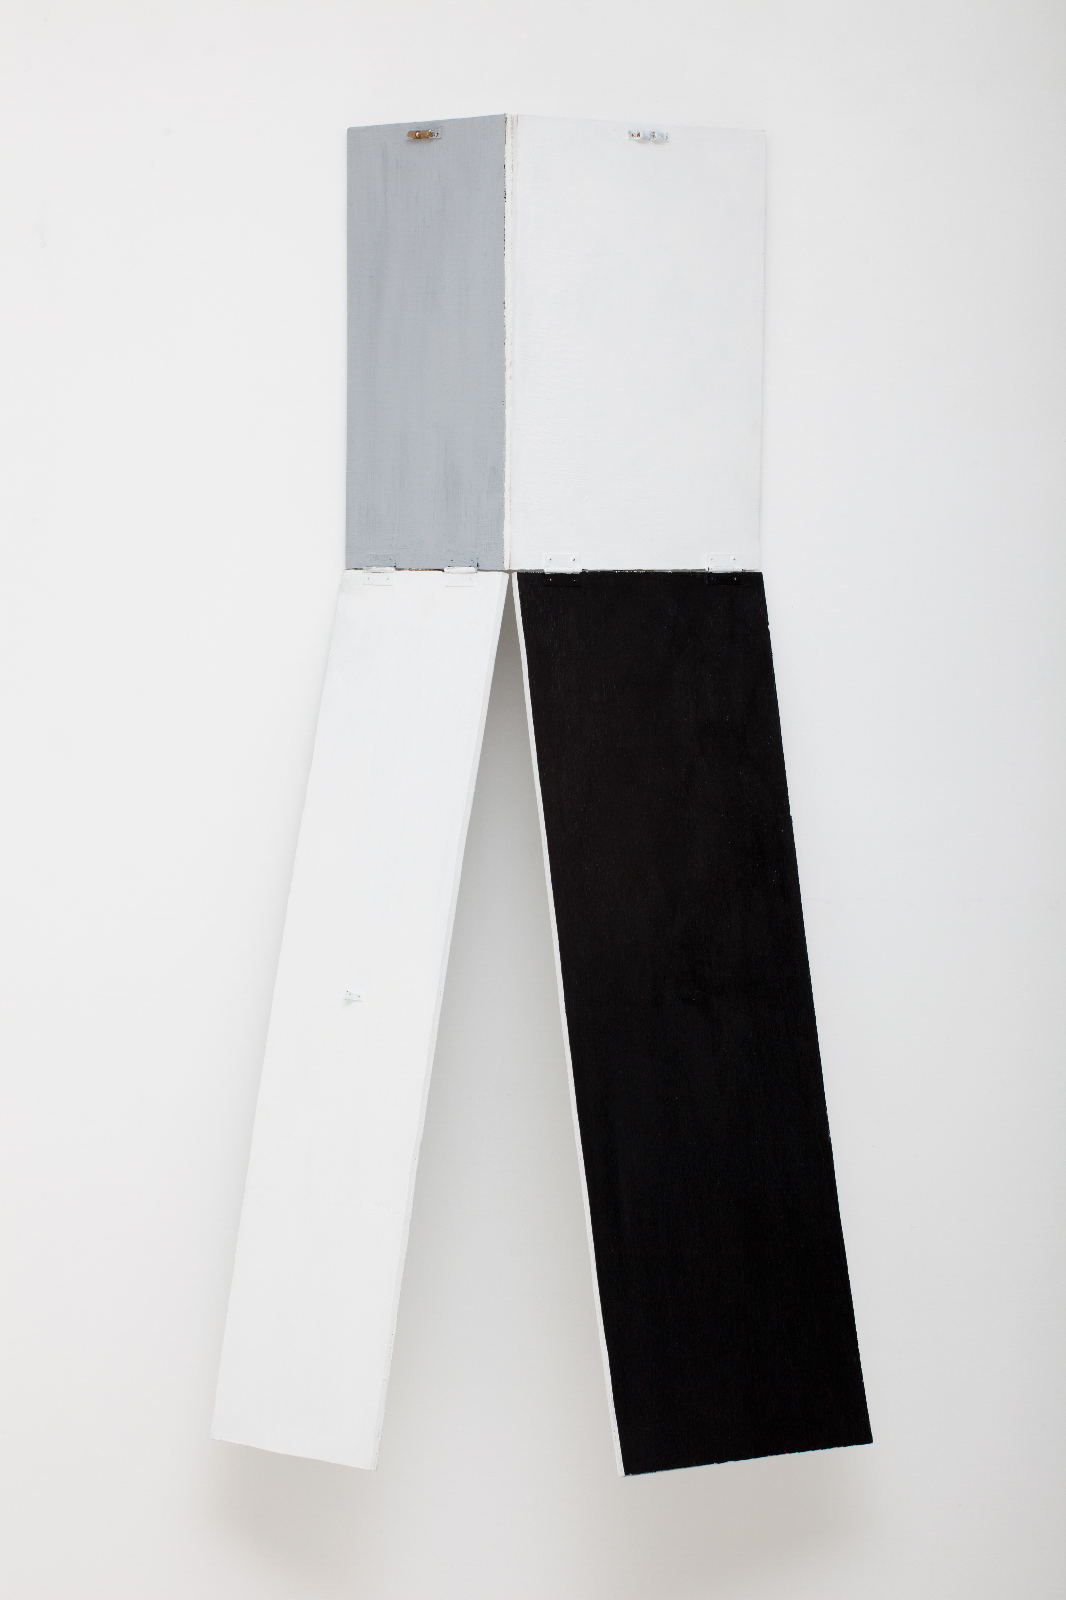 SIMON BLAU  Hinge Drop  2010 gesso on plywood dimensions variable